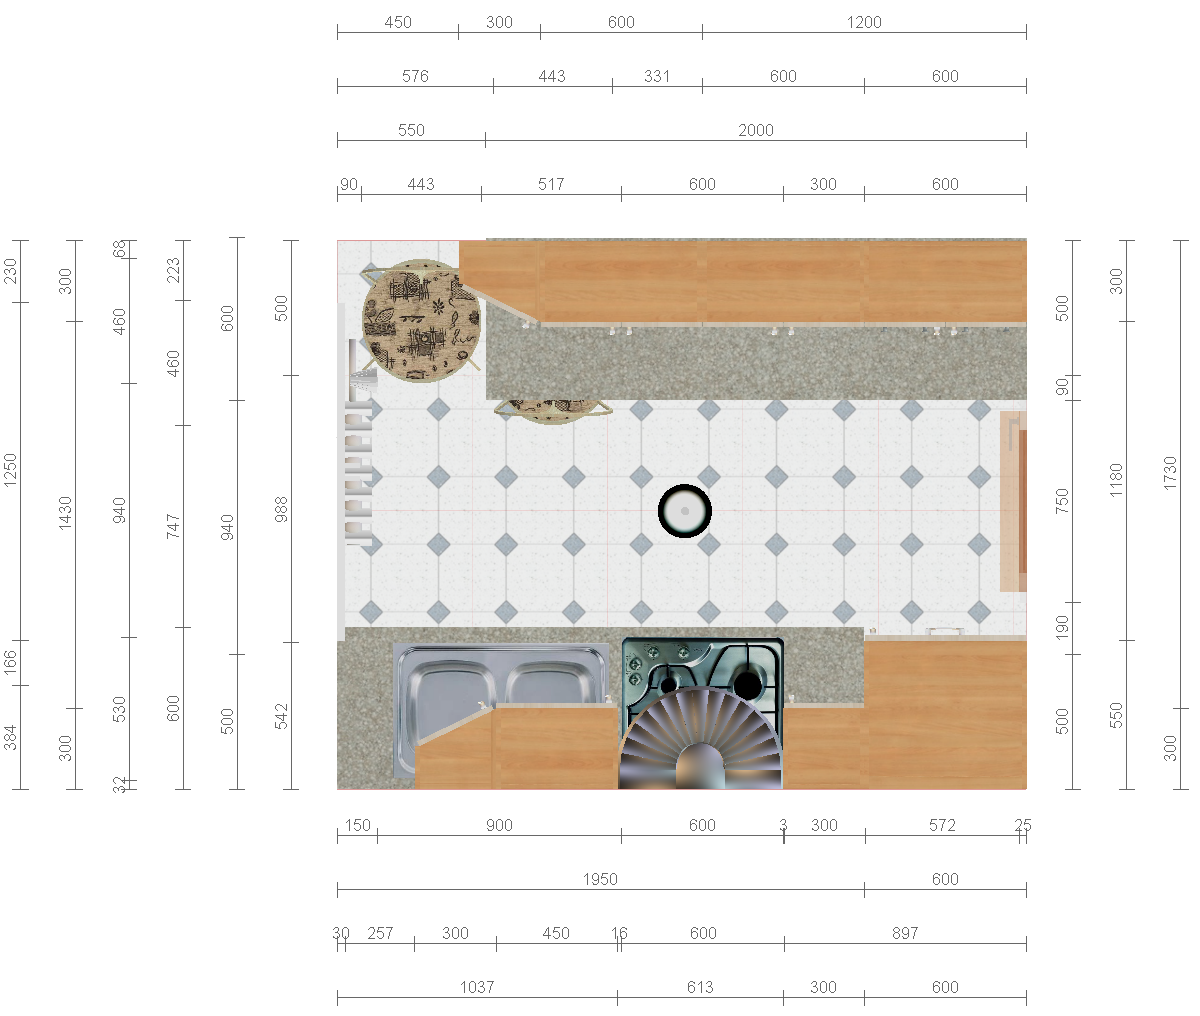 kitchen plan textures png wikimedia commons file small kitchen plan